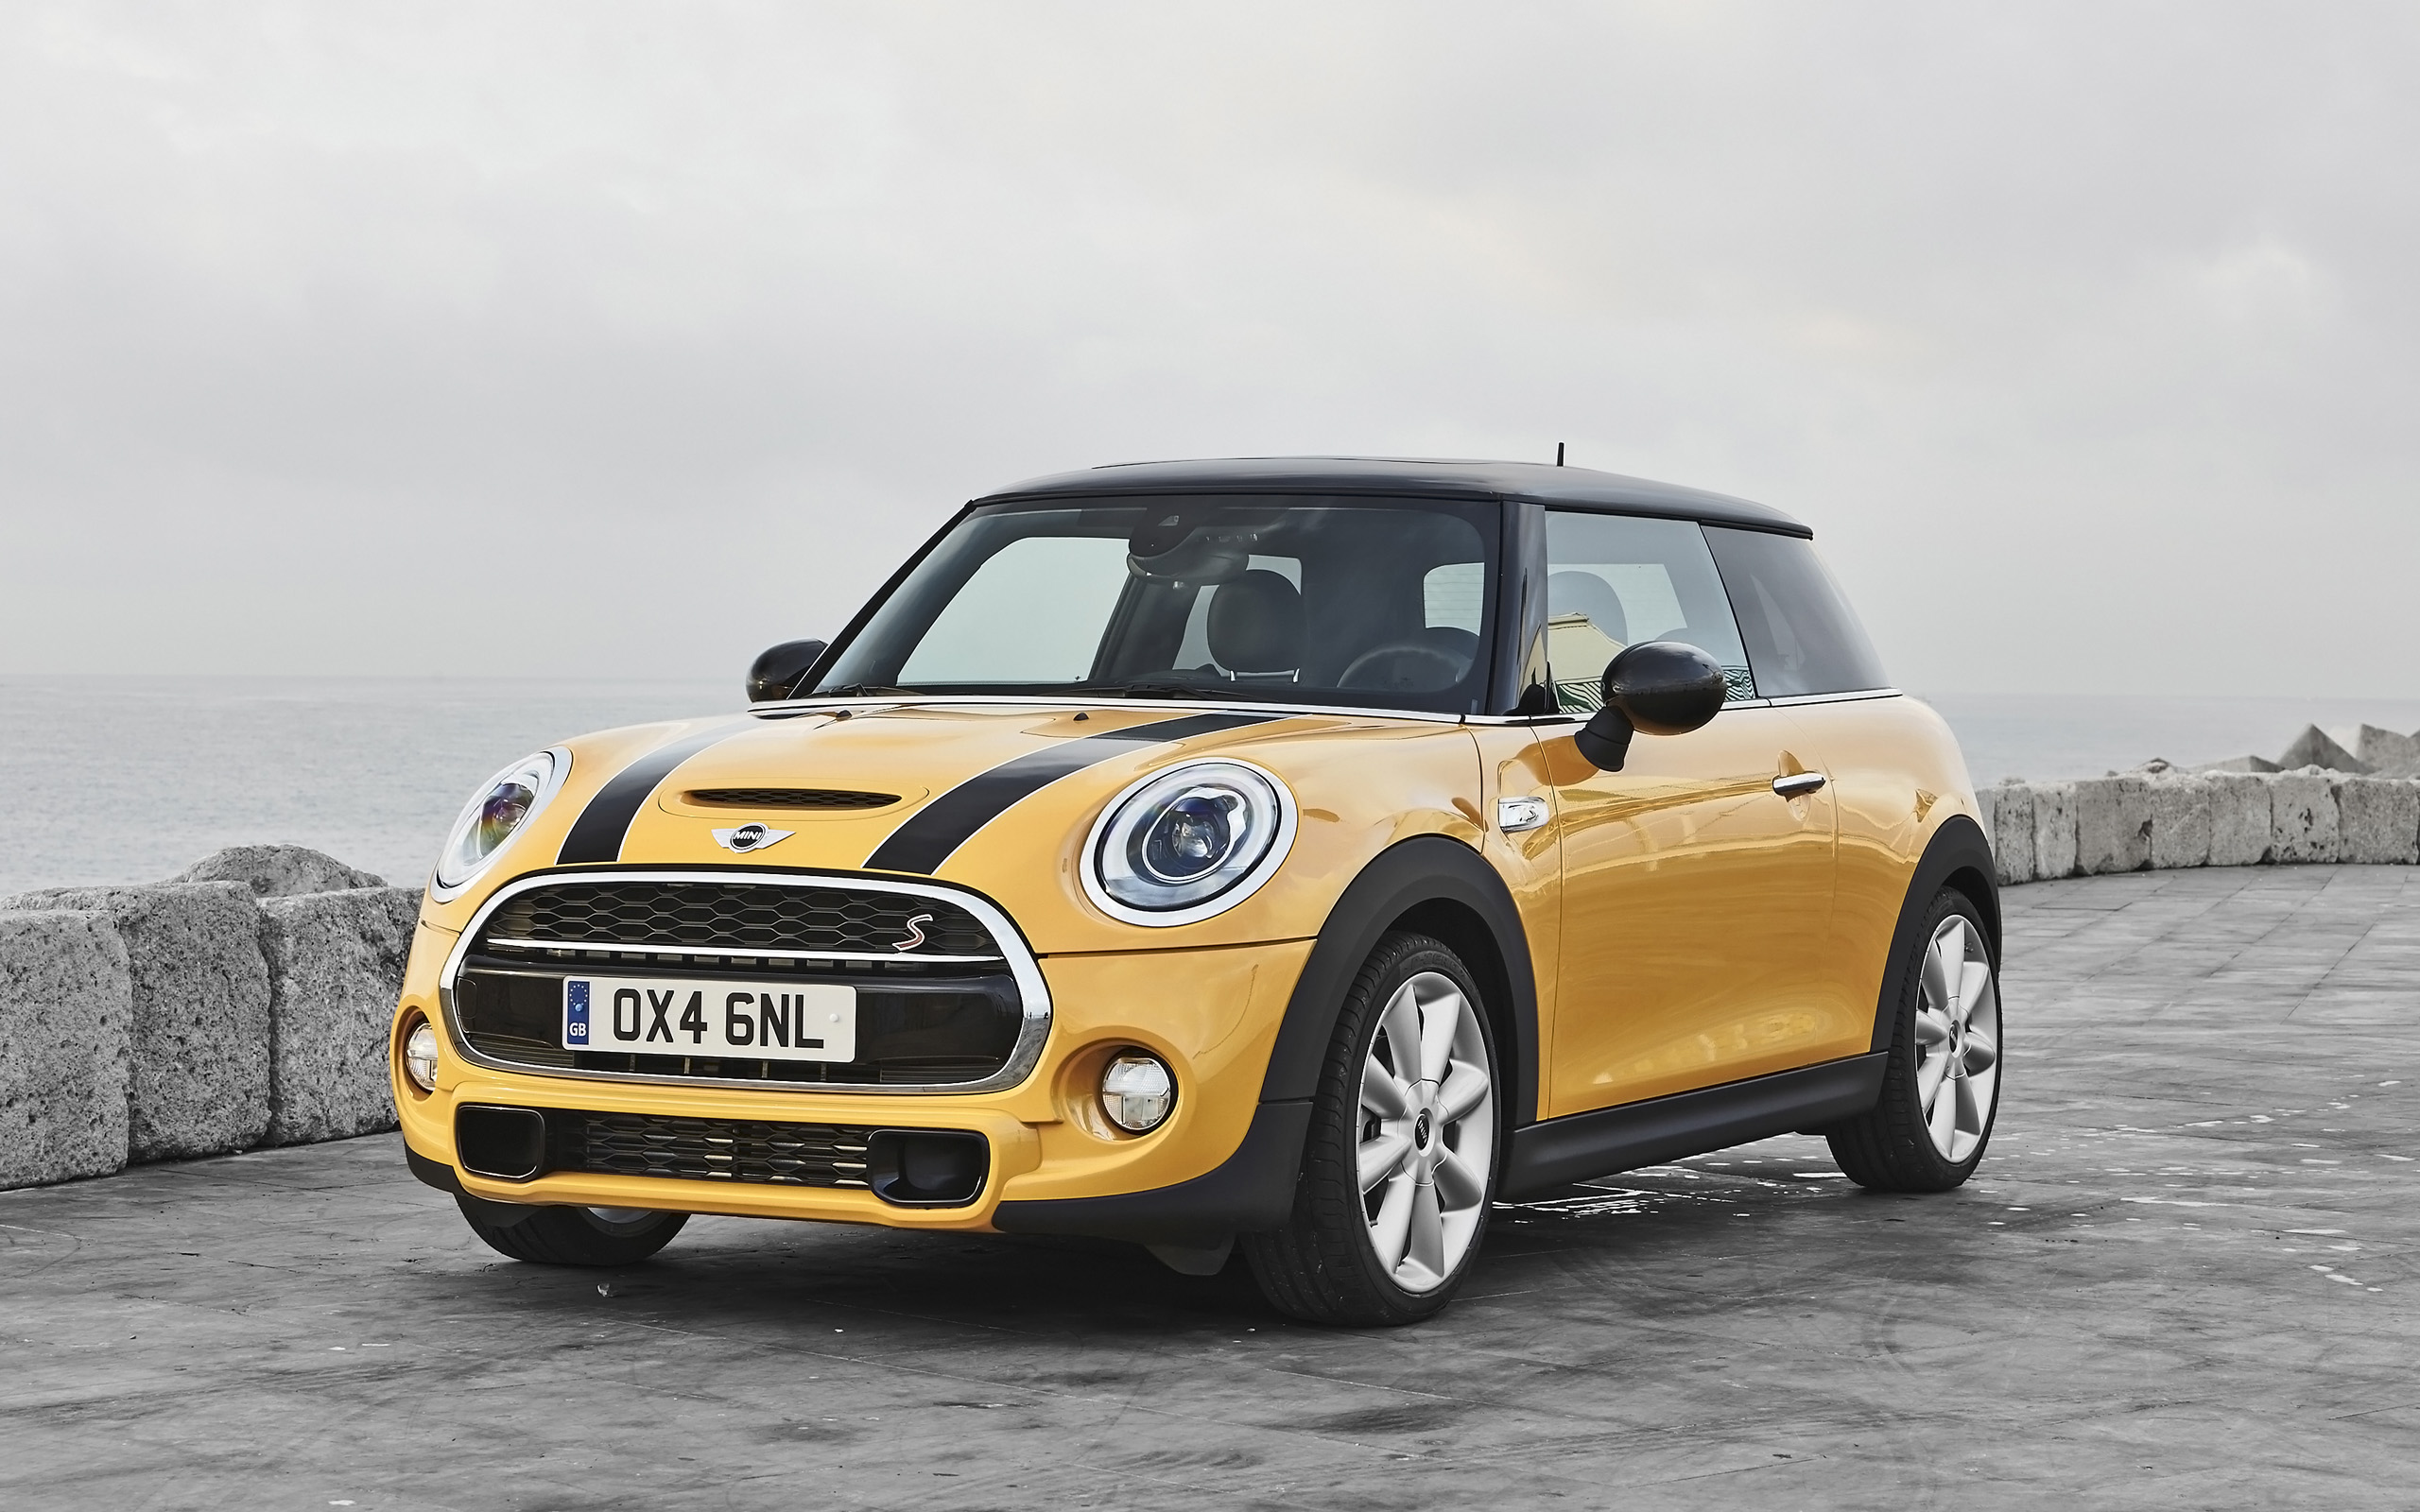 2014 Mini Cooper Hardtop S Wallpaper HD Car Wallpapers 2560x1600